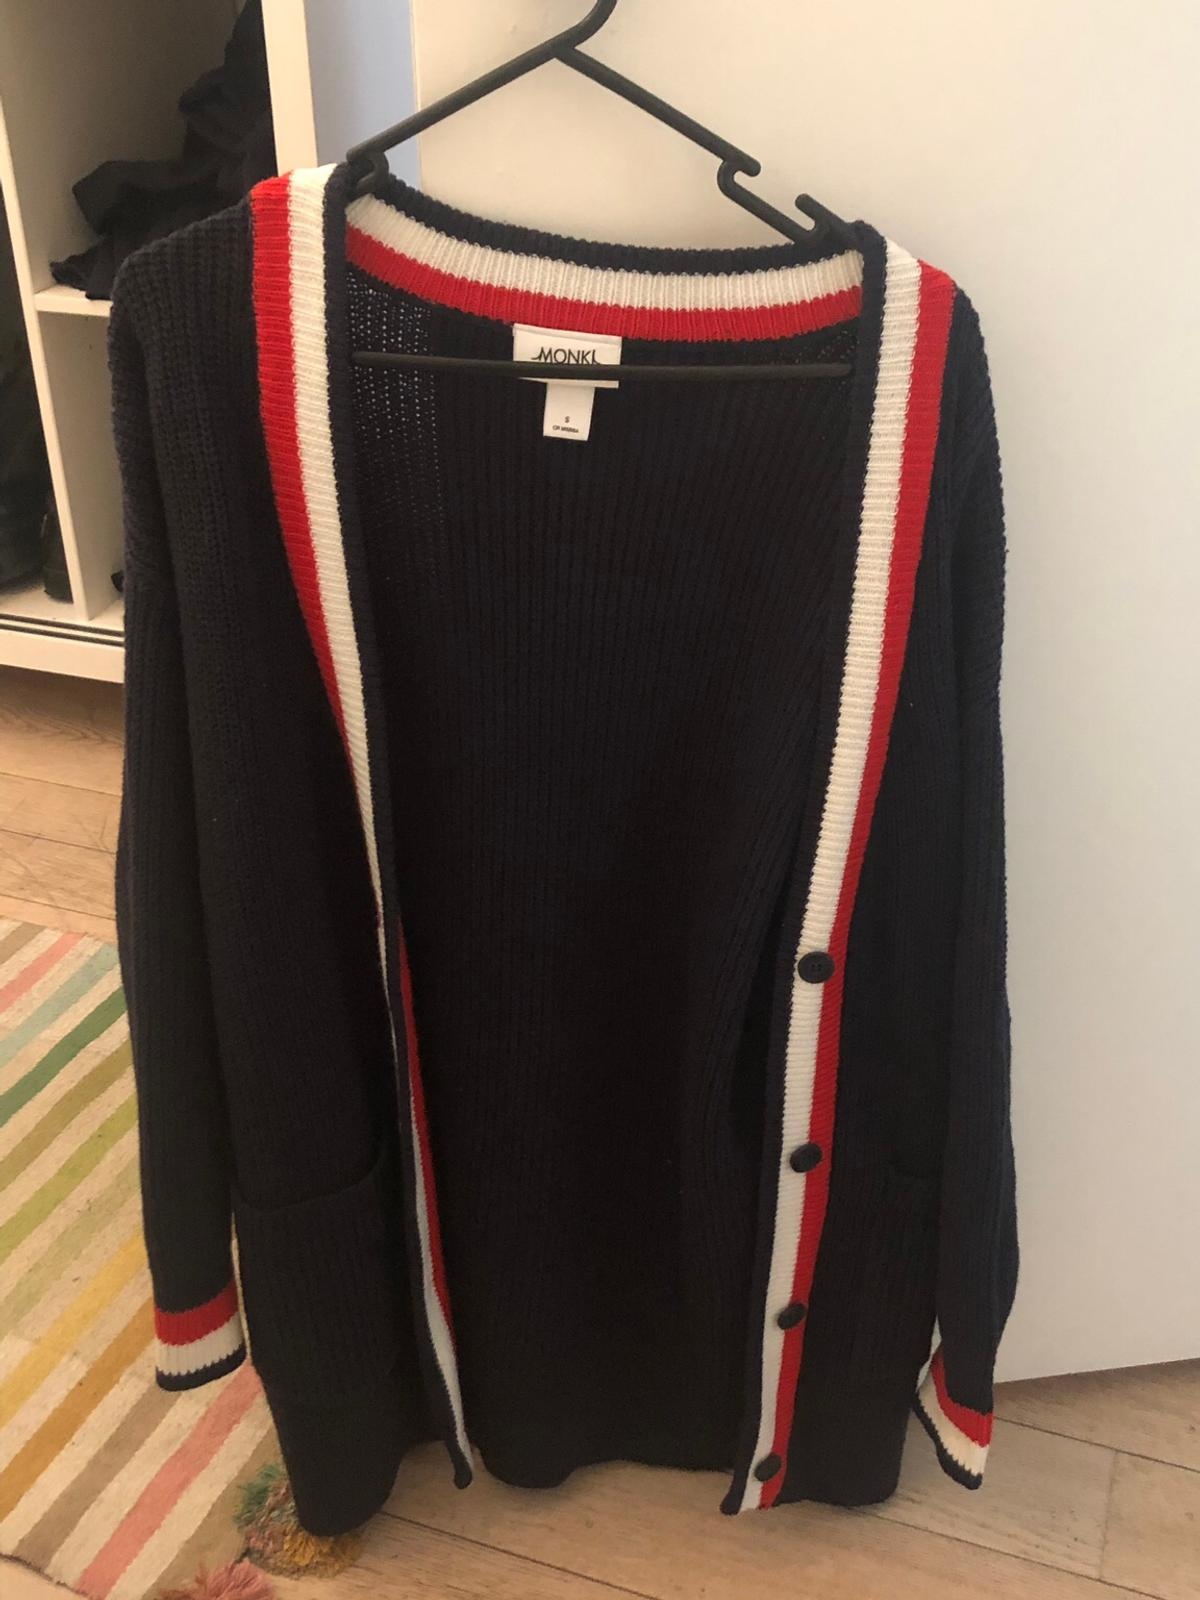 Never been worn navy cardigan with white, red stripe detail. Size small. Really cosy! I bought it last year & found another one soon after.